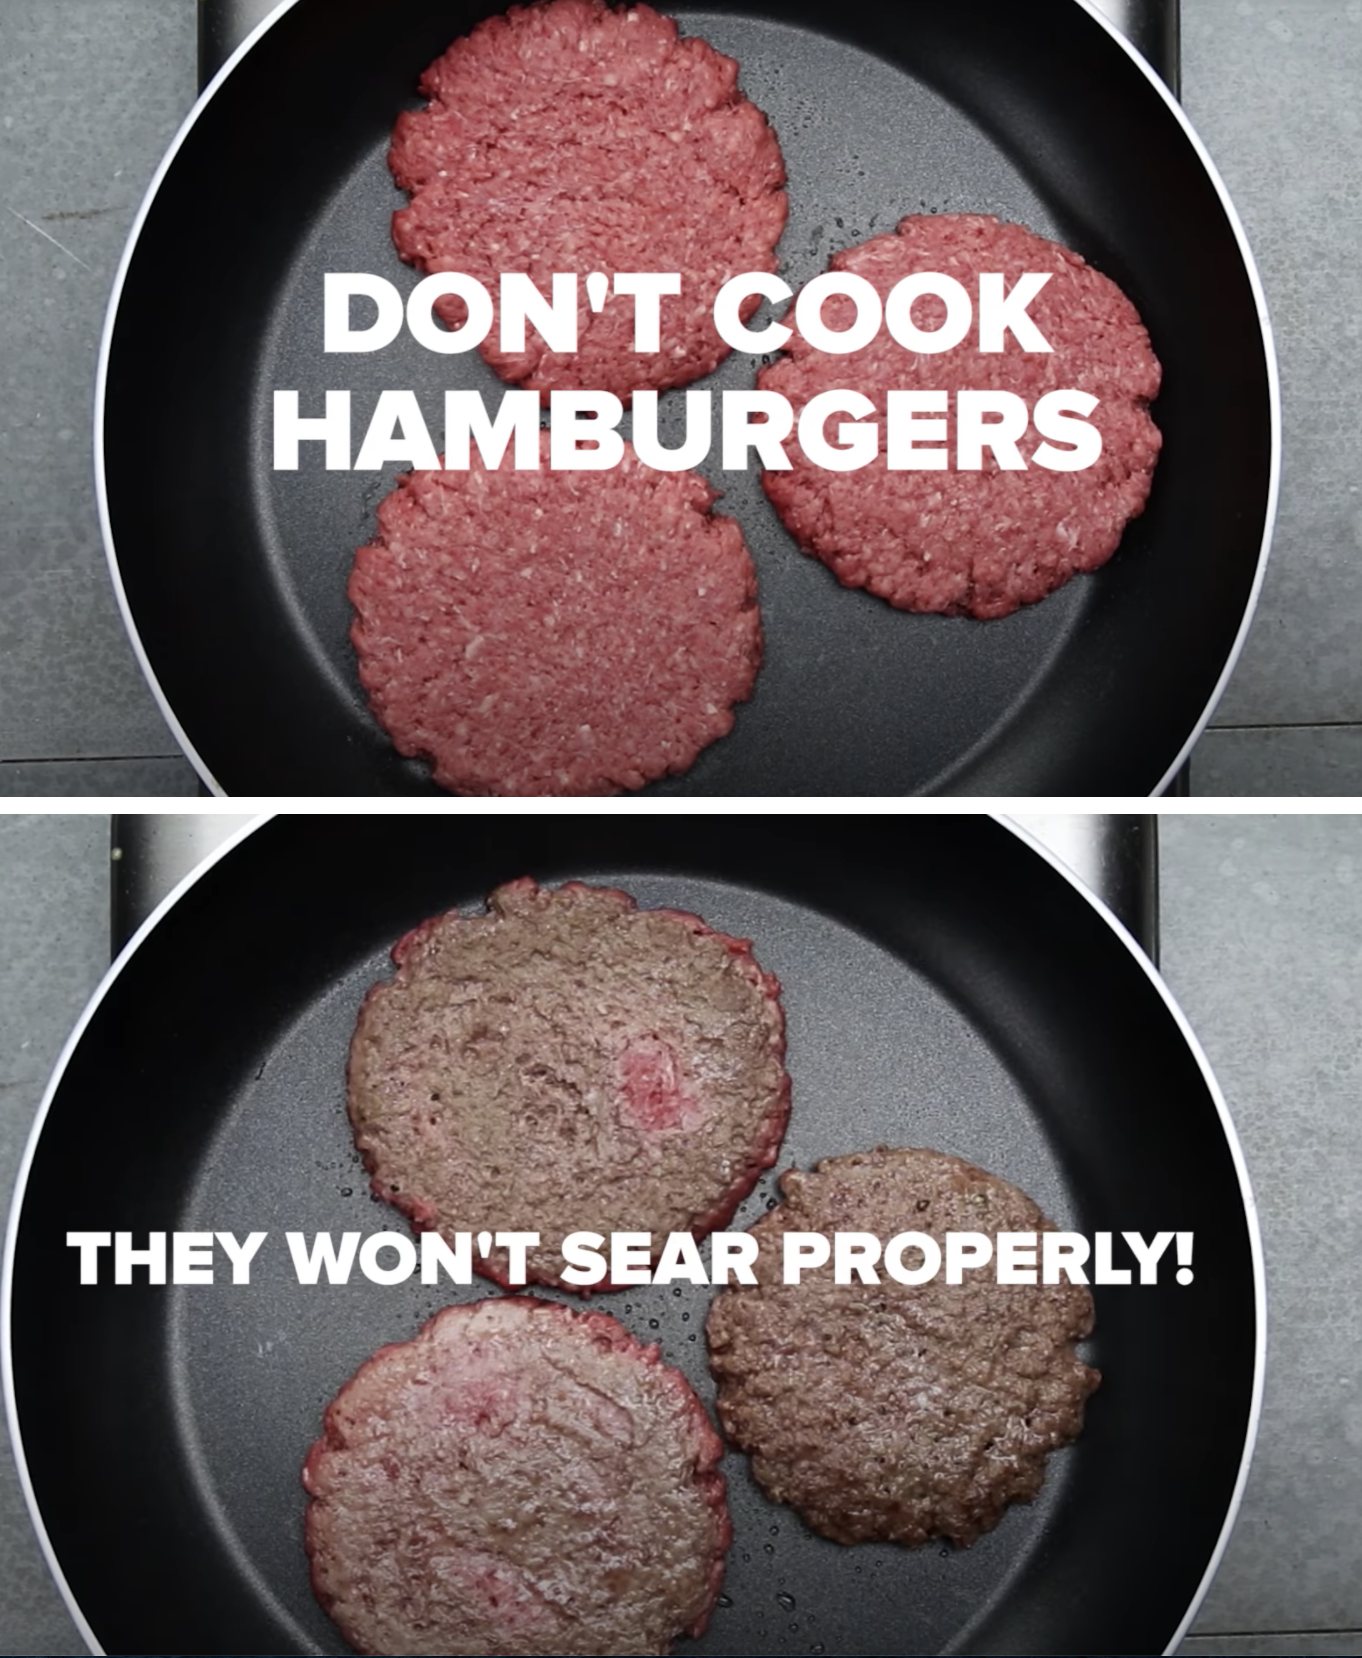 Burger patties cooking improperly in a non-stick pan